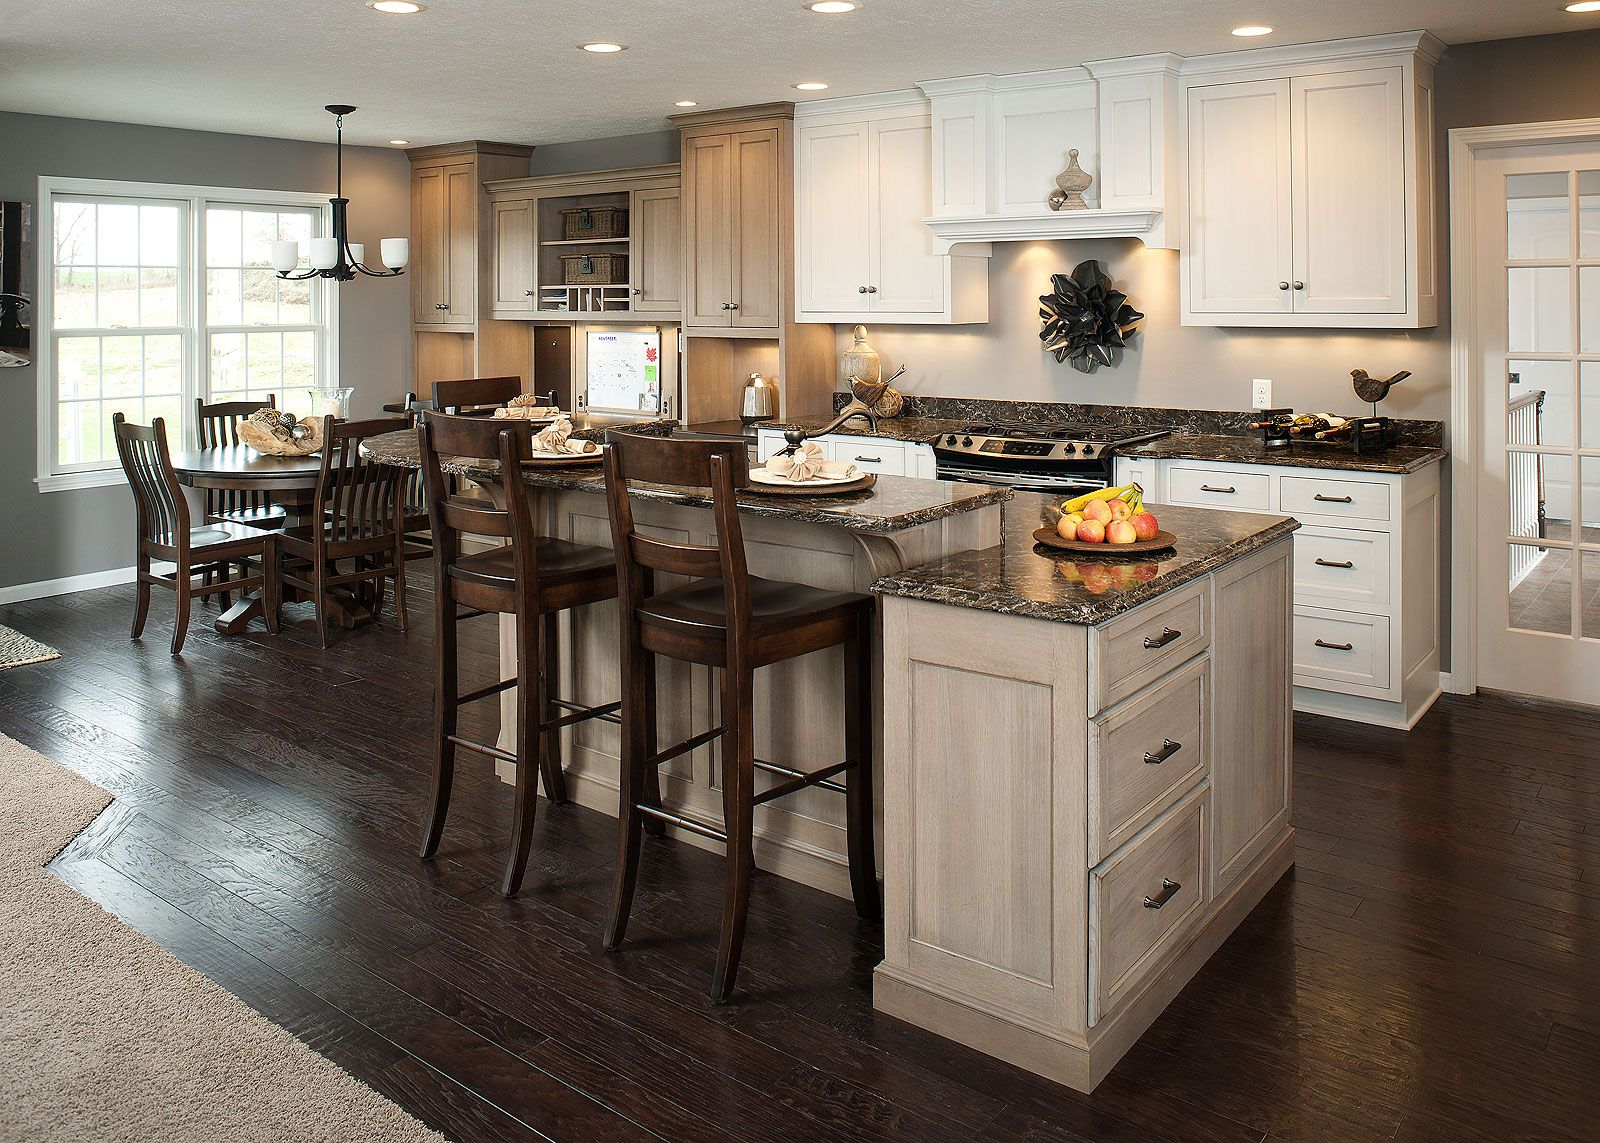 Add your kitchen with kitchen island with stools midcityeast for Kitchen with island